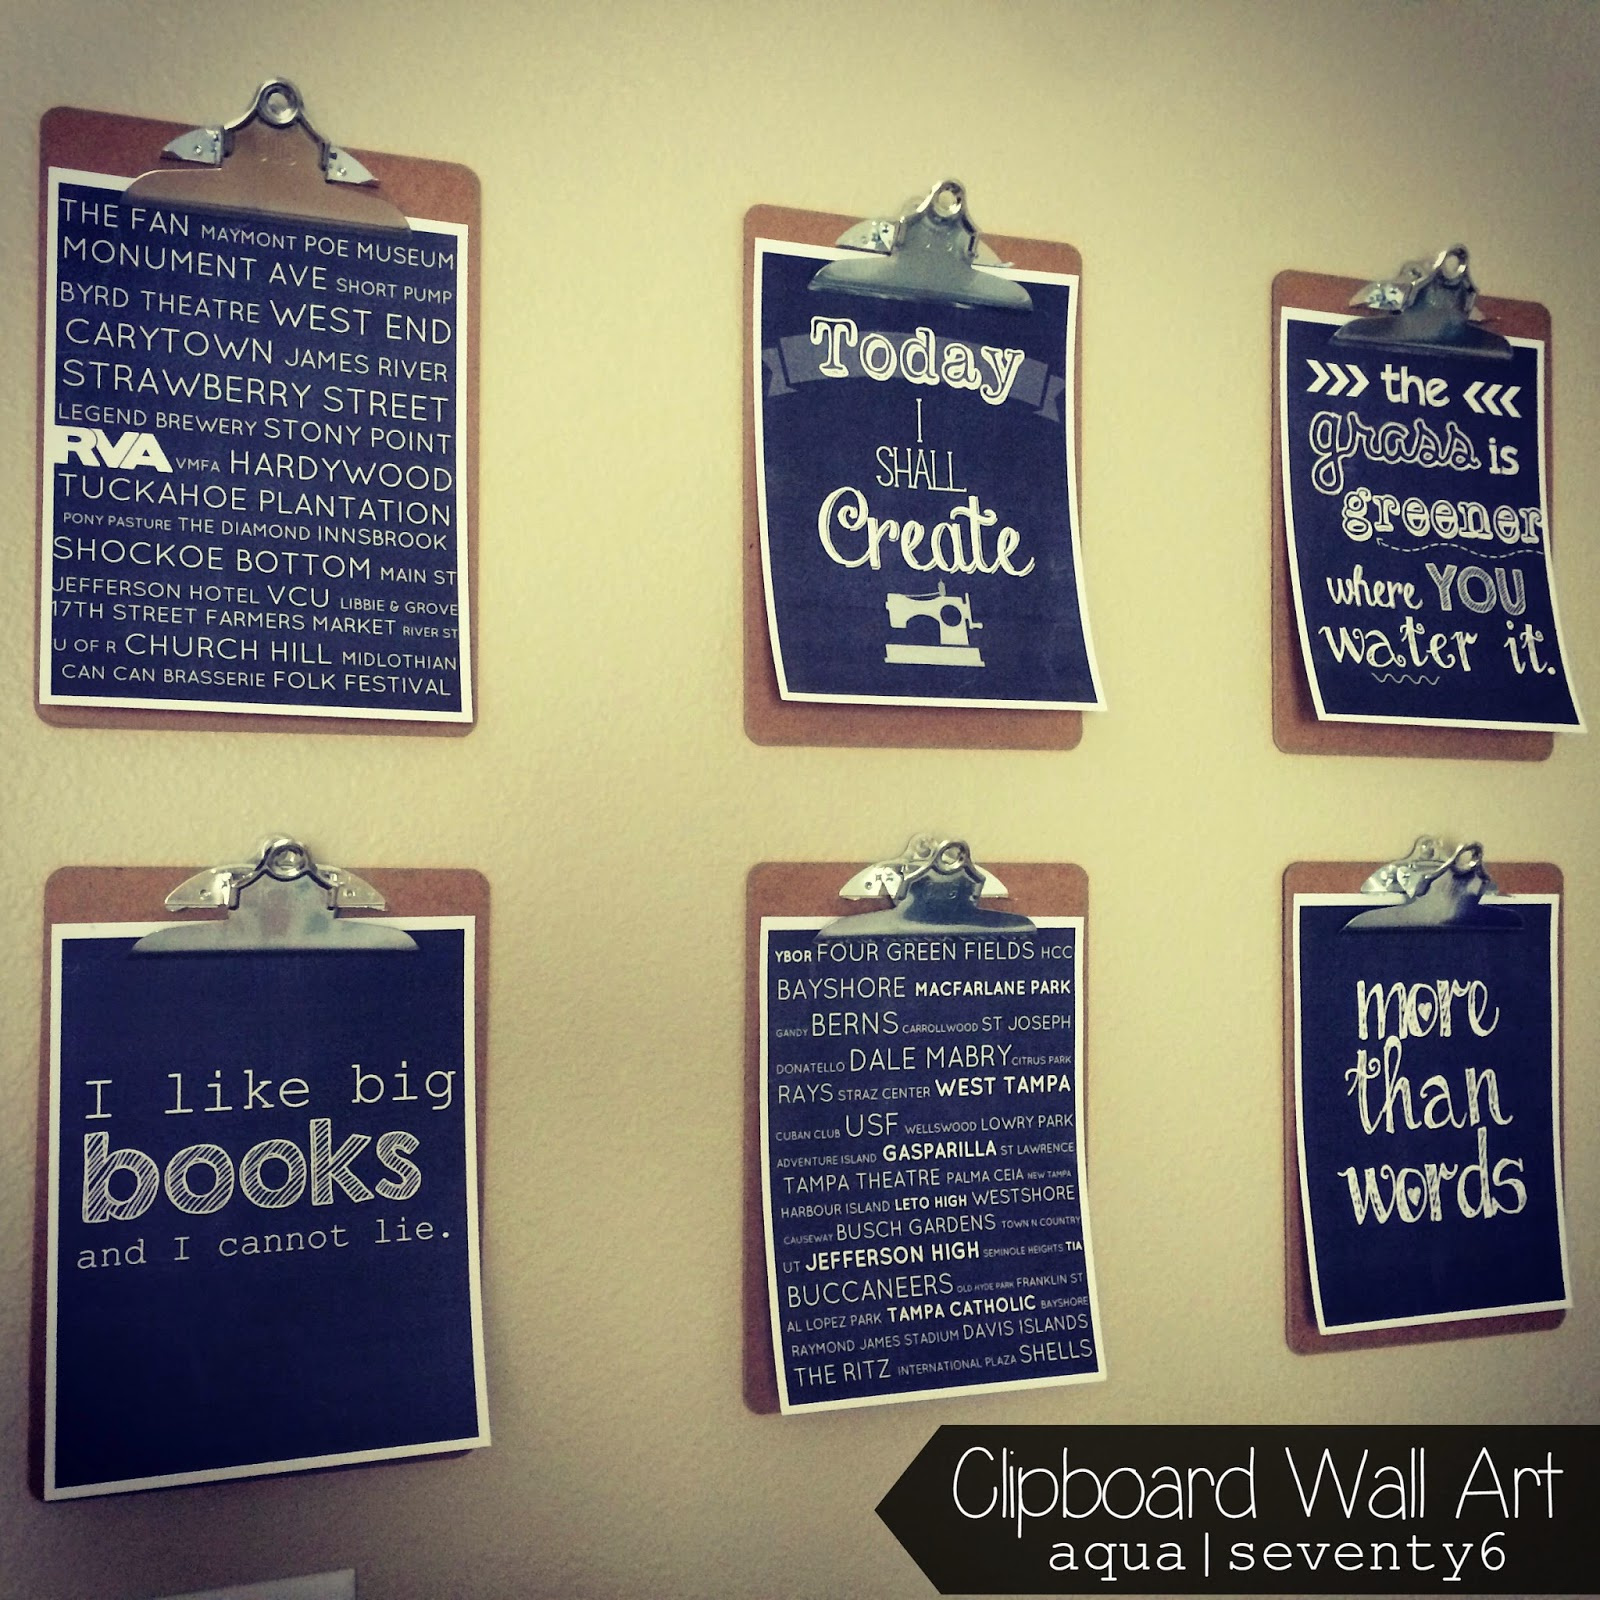 Aqua Seventy6: Clipboard Wall Art and Framed Thread Rack